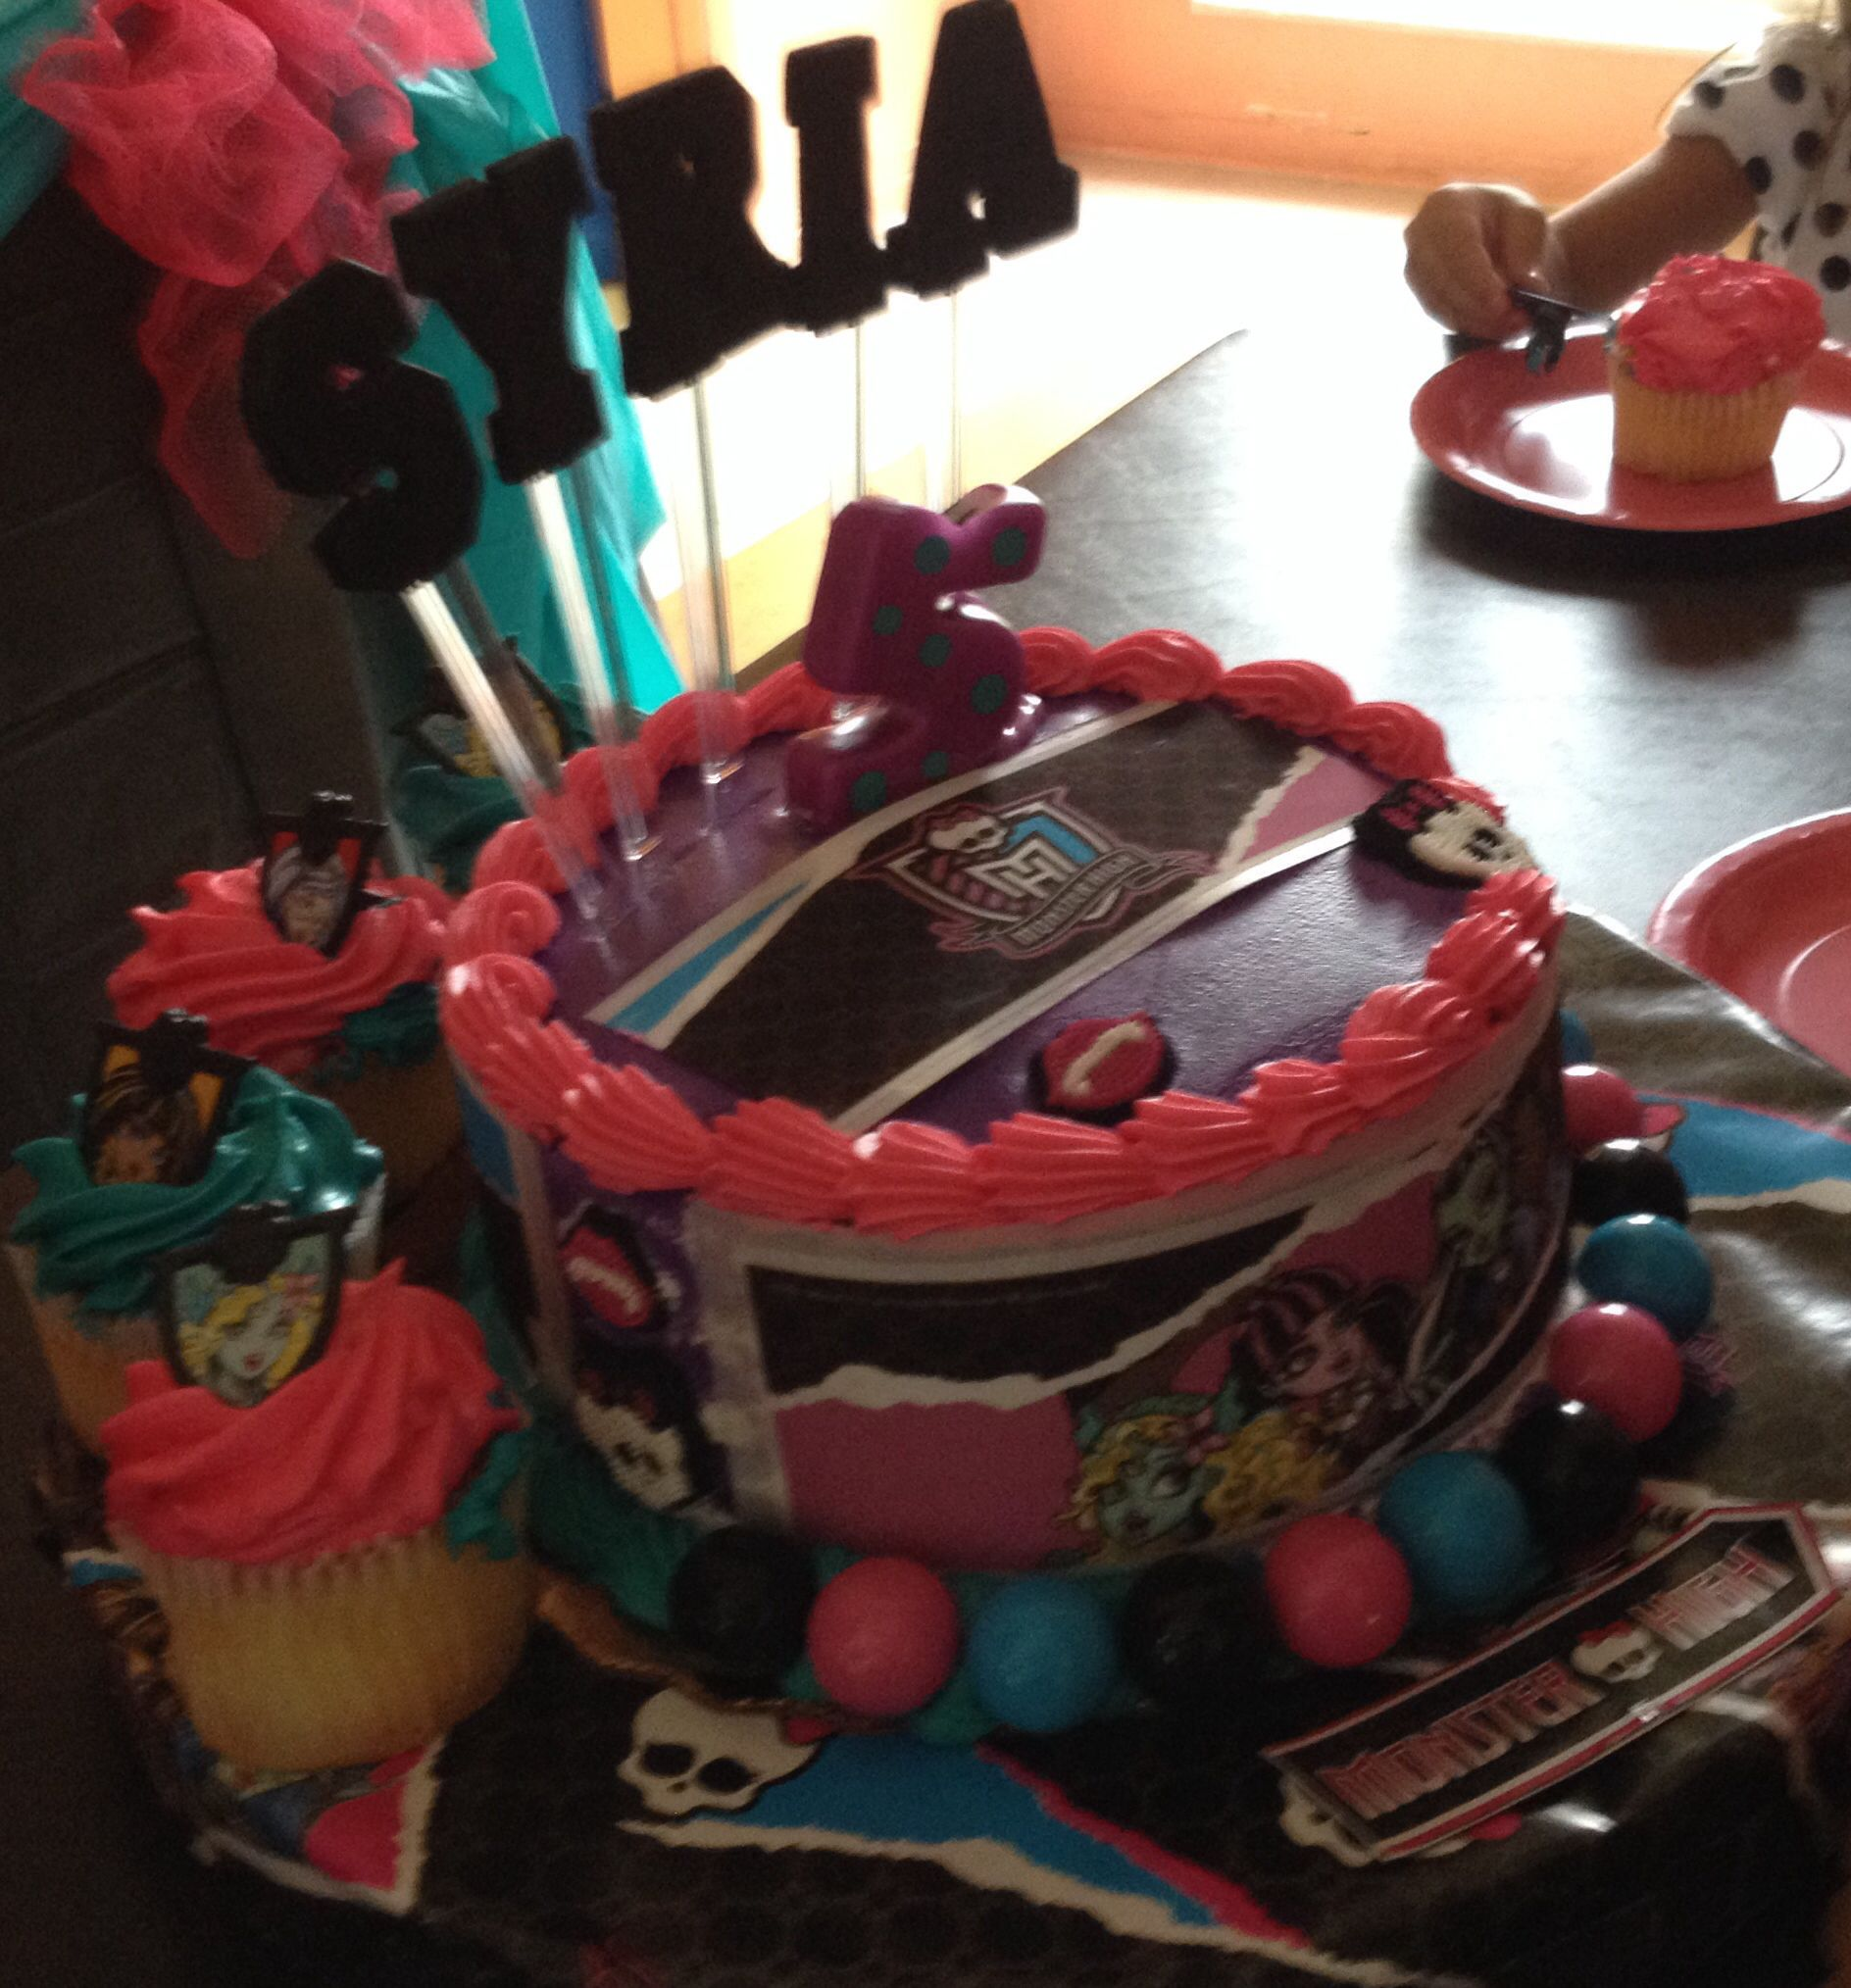 Monster High Cake And Cupcakes Ordered At Publix Bakery With Hot Pink Turquoise